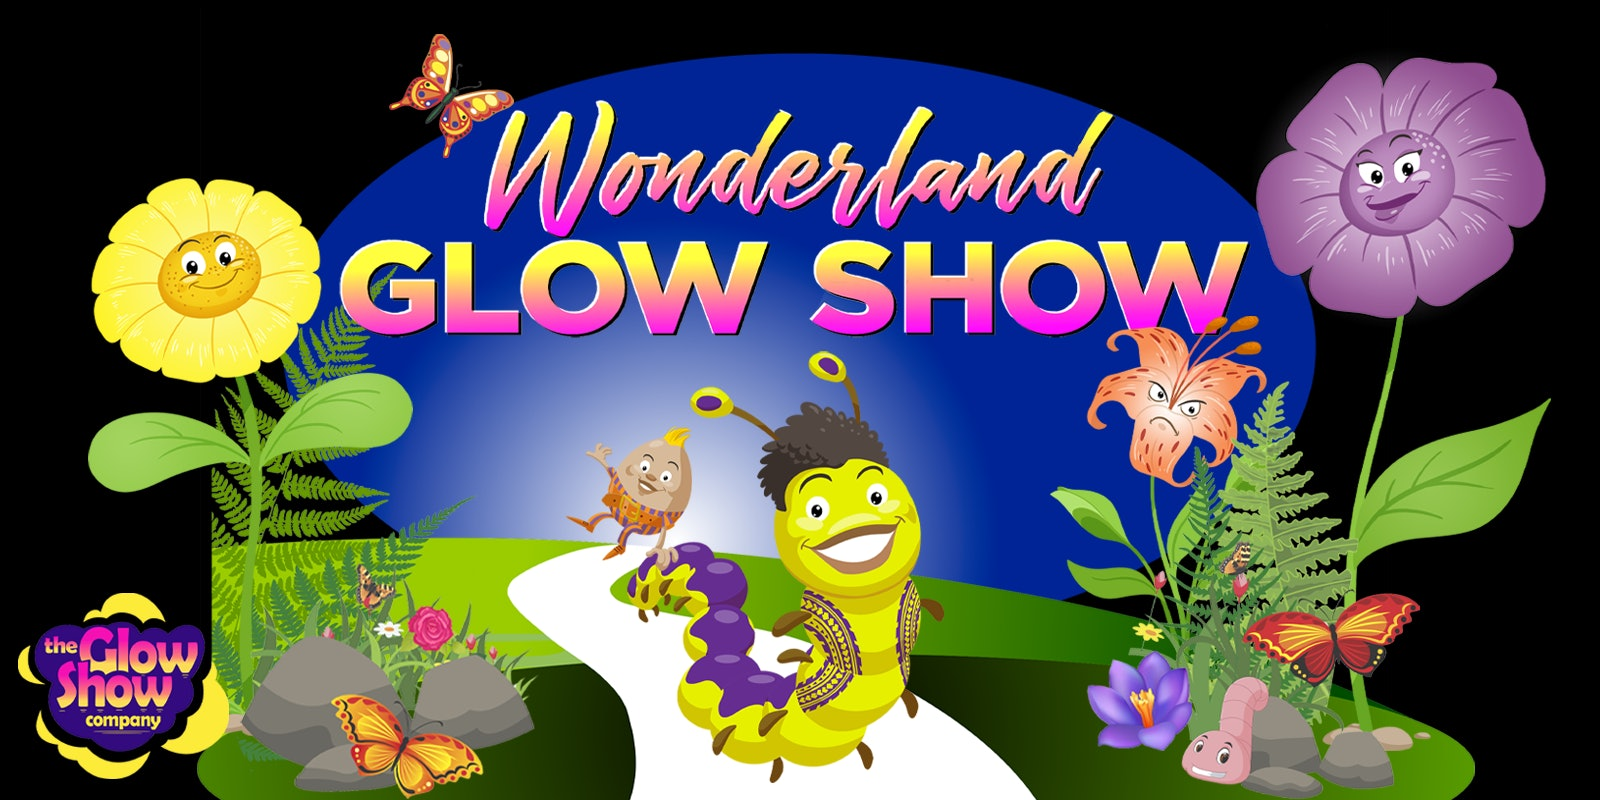 Wonderland Glow Show! (Ages 5 and under)